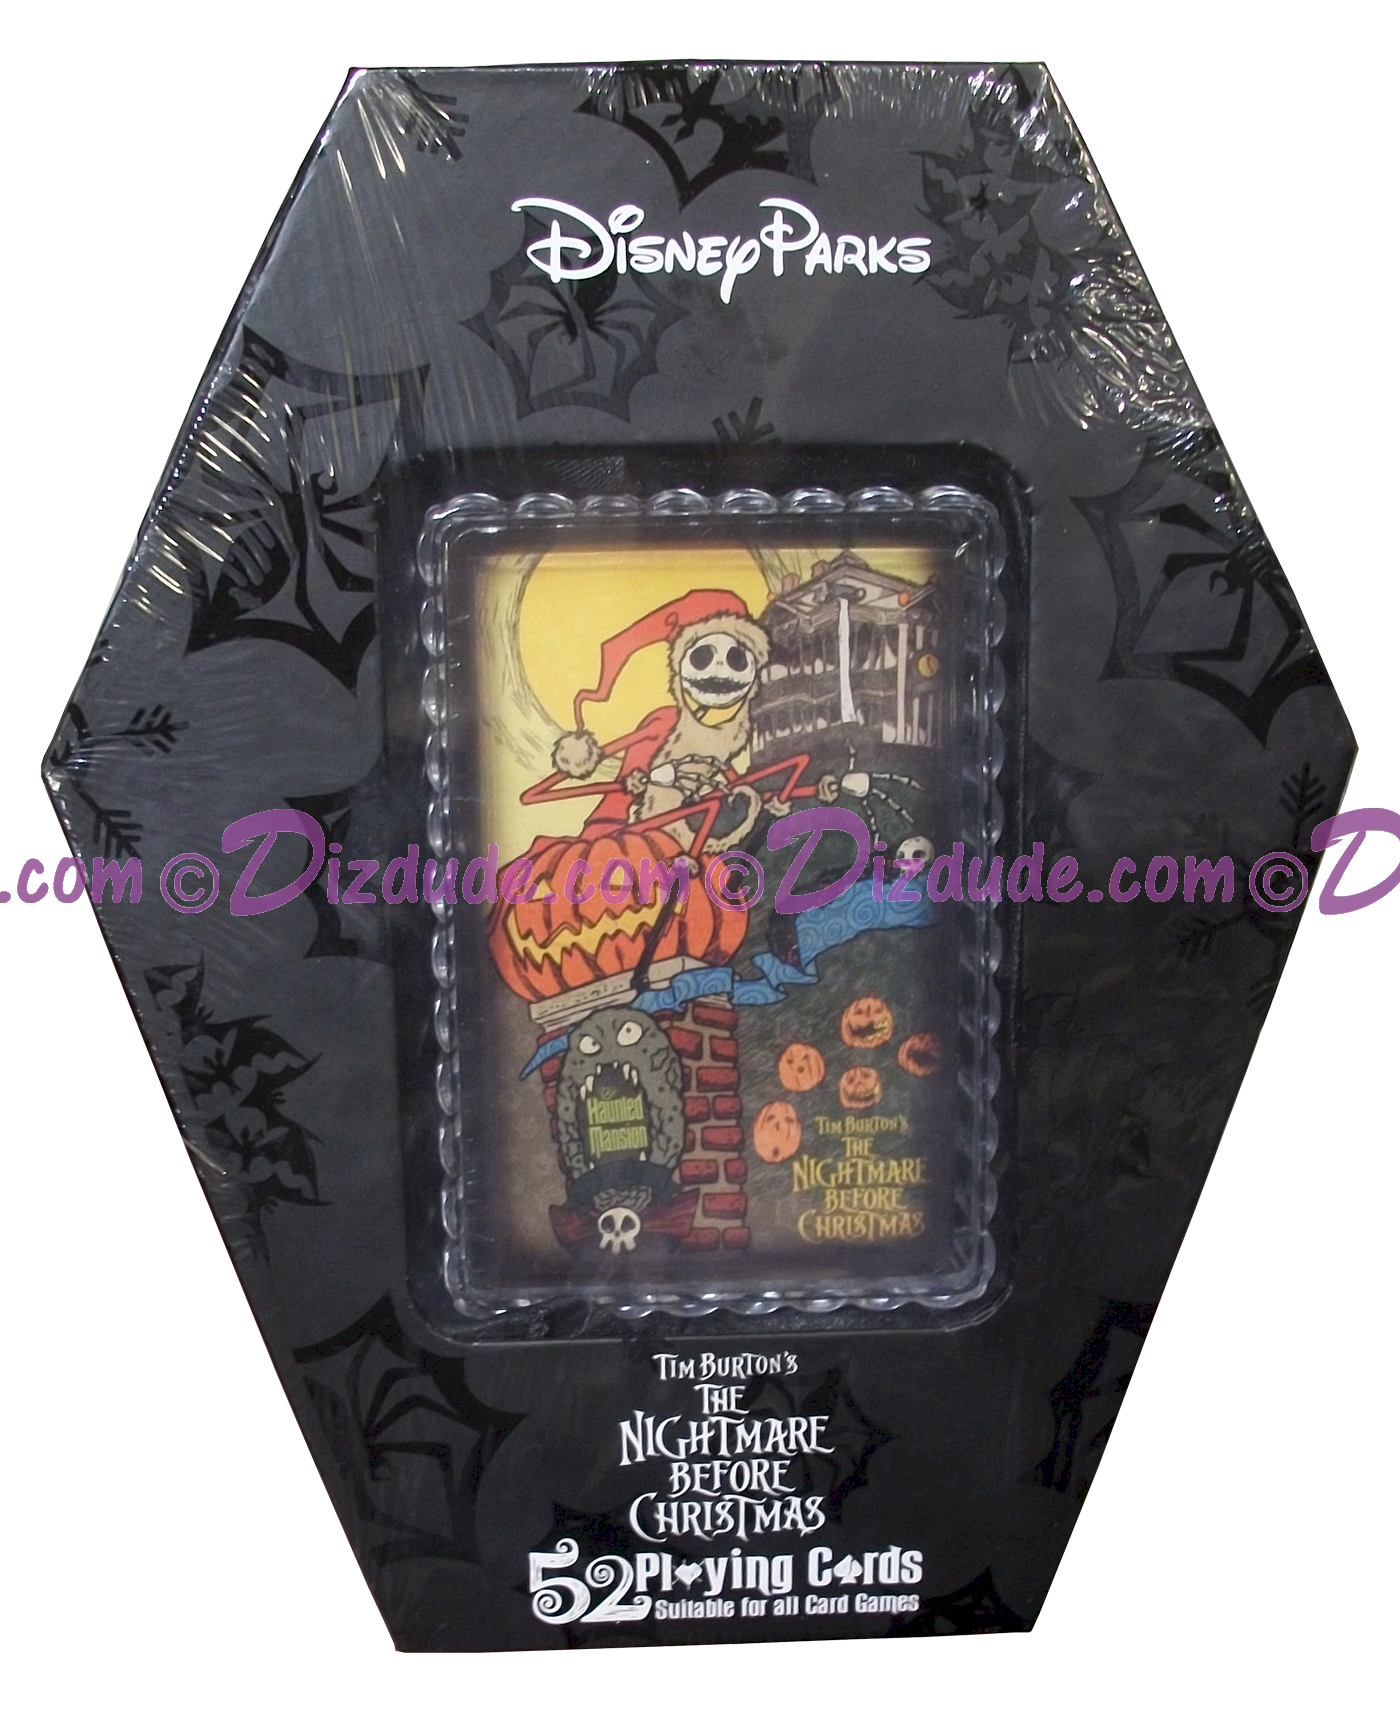 Disney World 52 Playing Cards The Nightmare Before Christmas © Dizdude.com